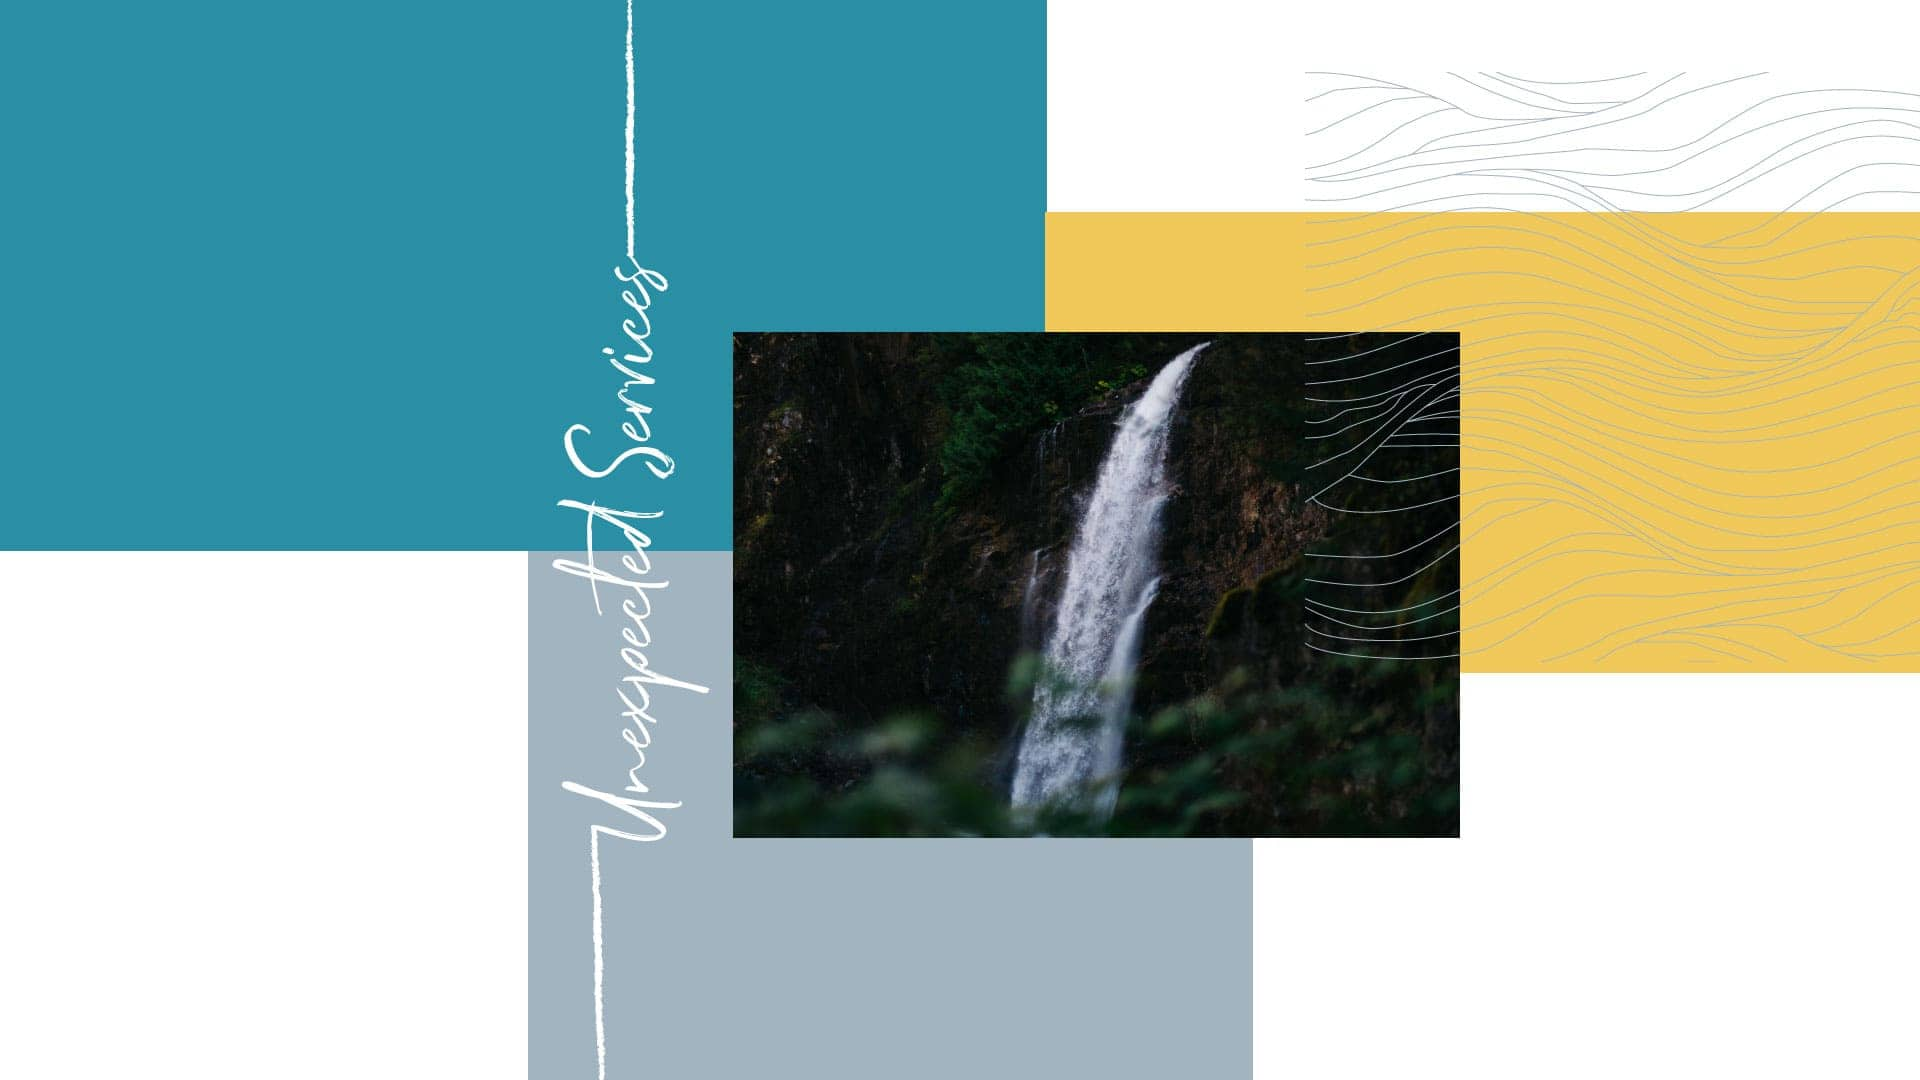 unexpected-servicesl - in script font over gray and turquoise blog with photo of waterfall in the bushes and yellow block behind